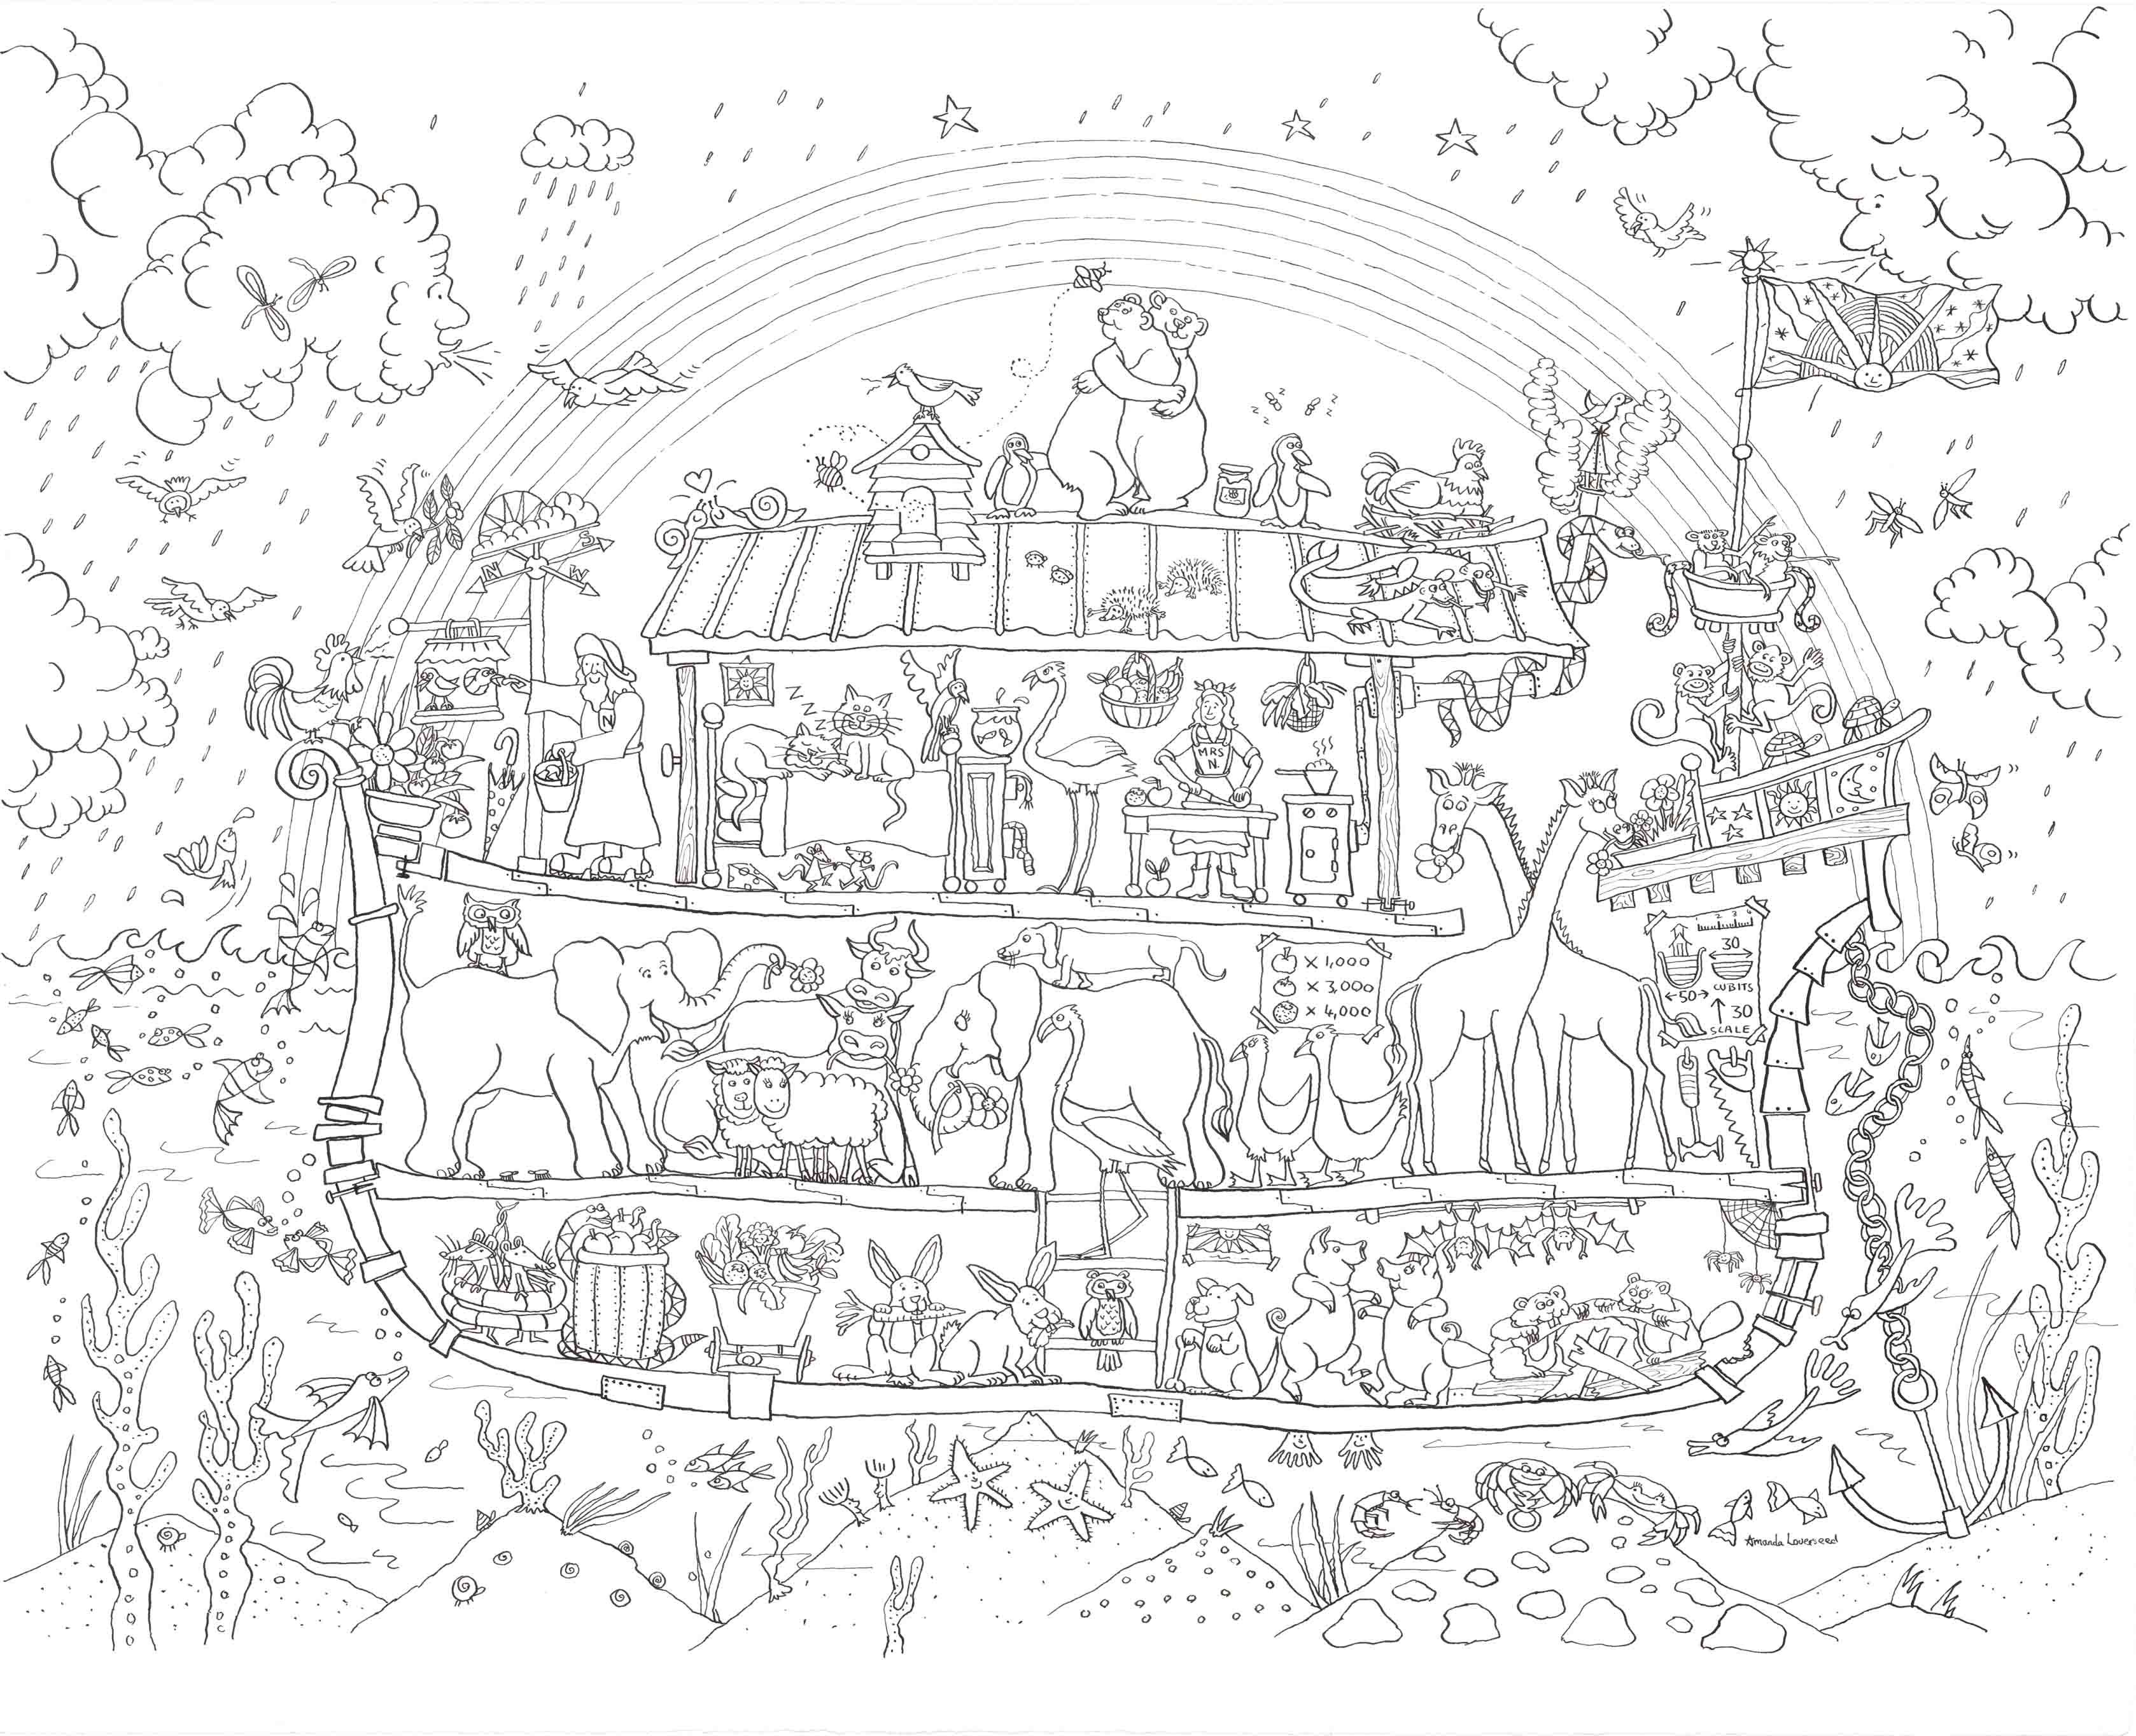 Noah S Ark Colouring In Poster Animal Coloring Pages Coloring Pages Coloring Books